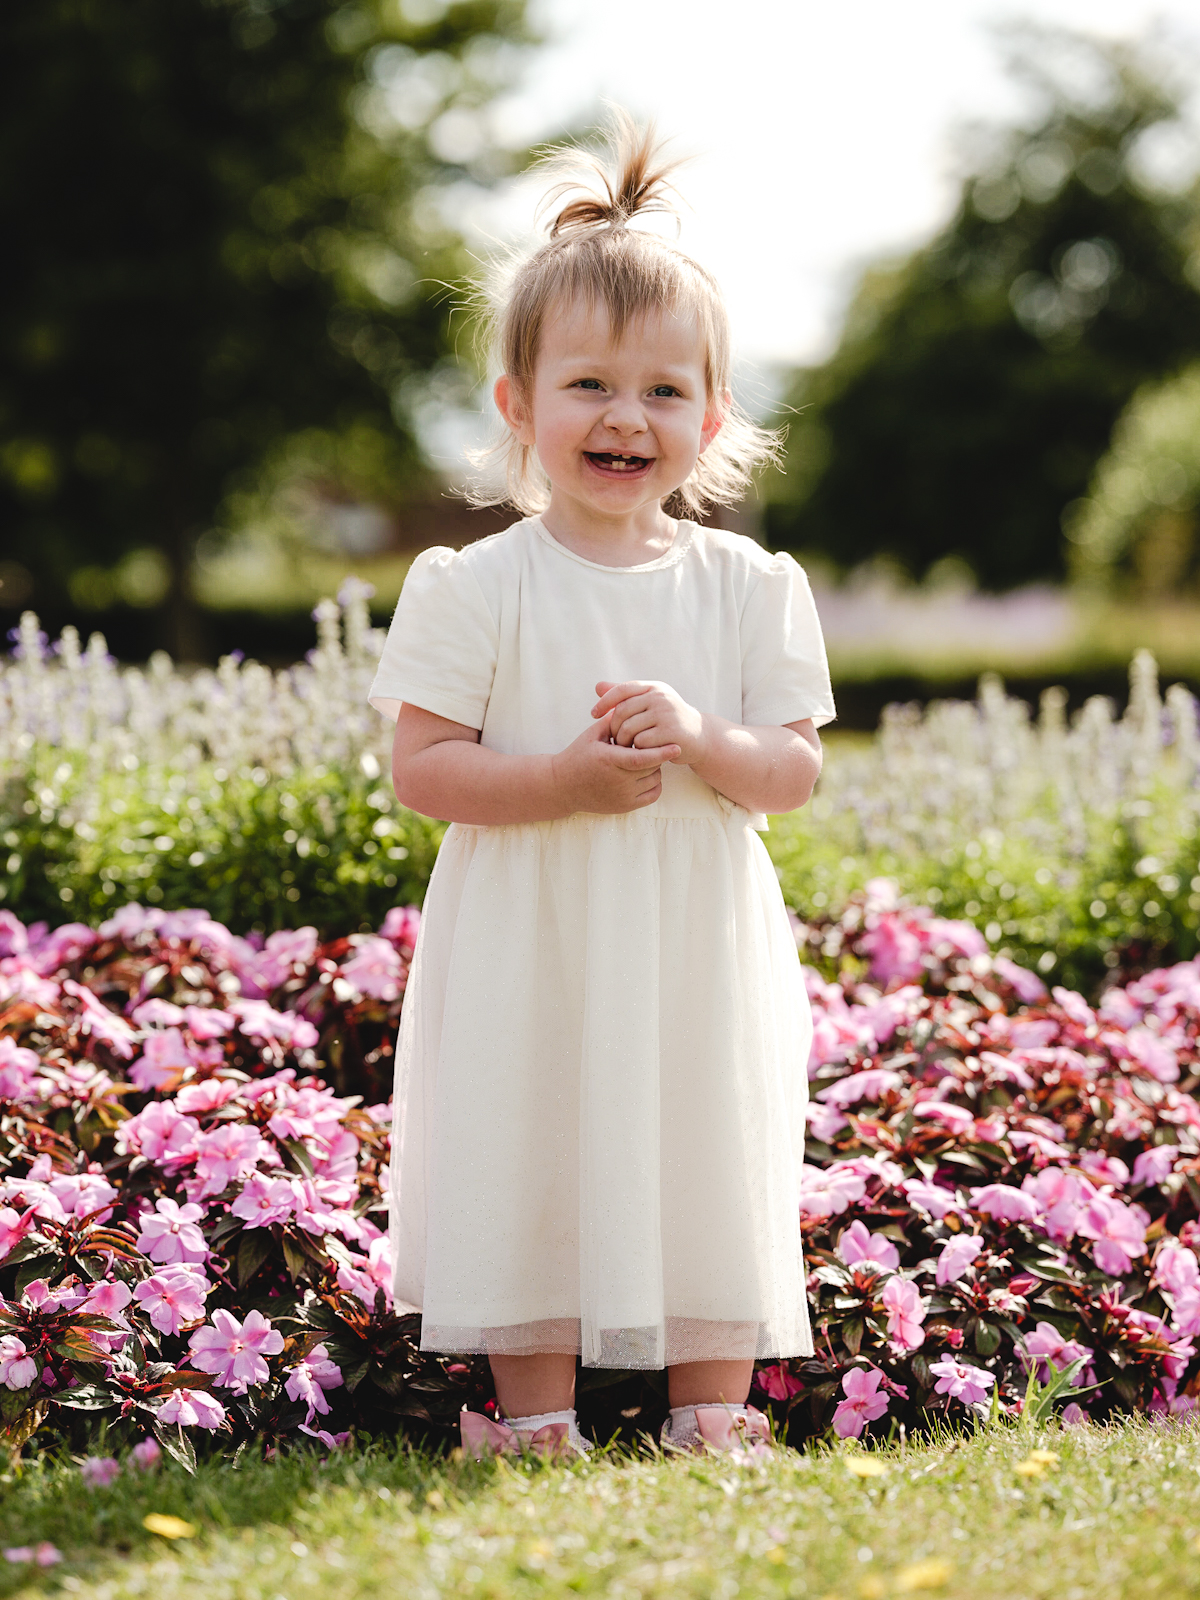 Little girl smiles and poses for a photo during a family photoshoot